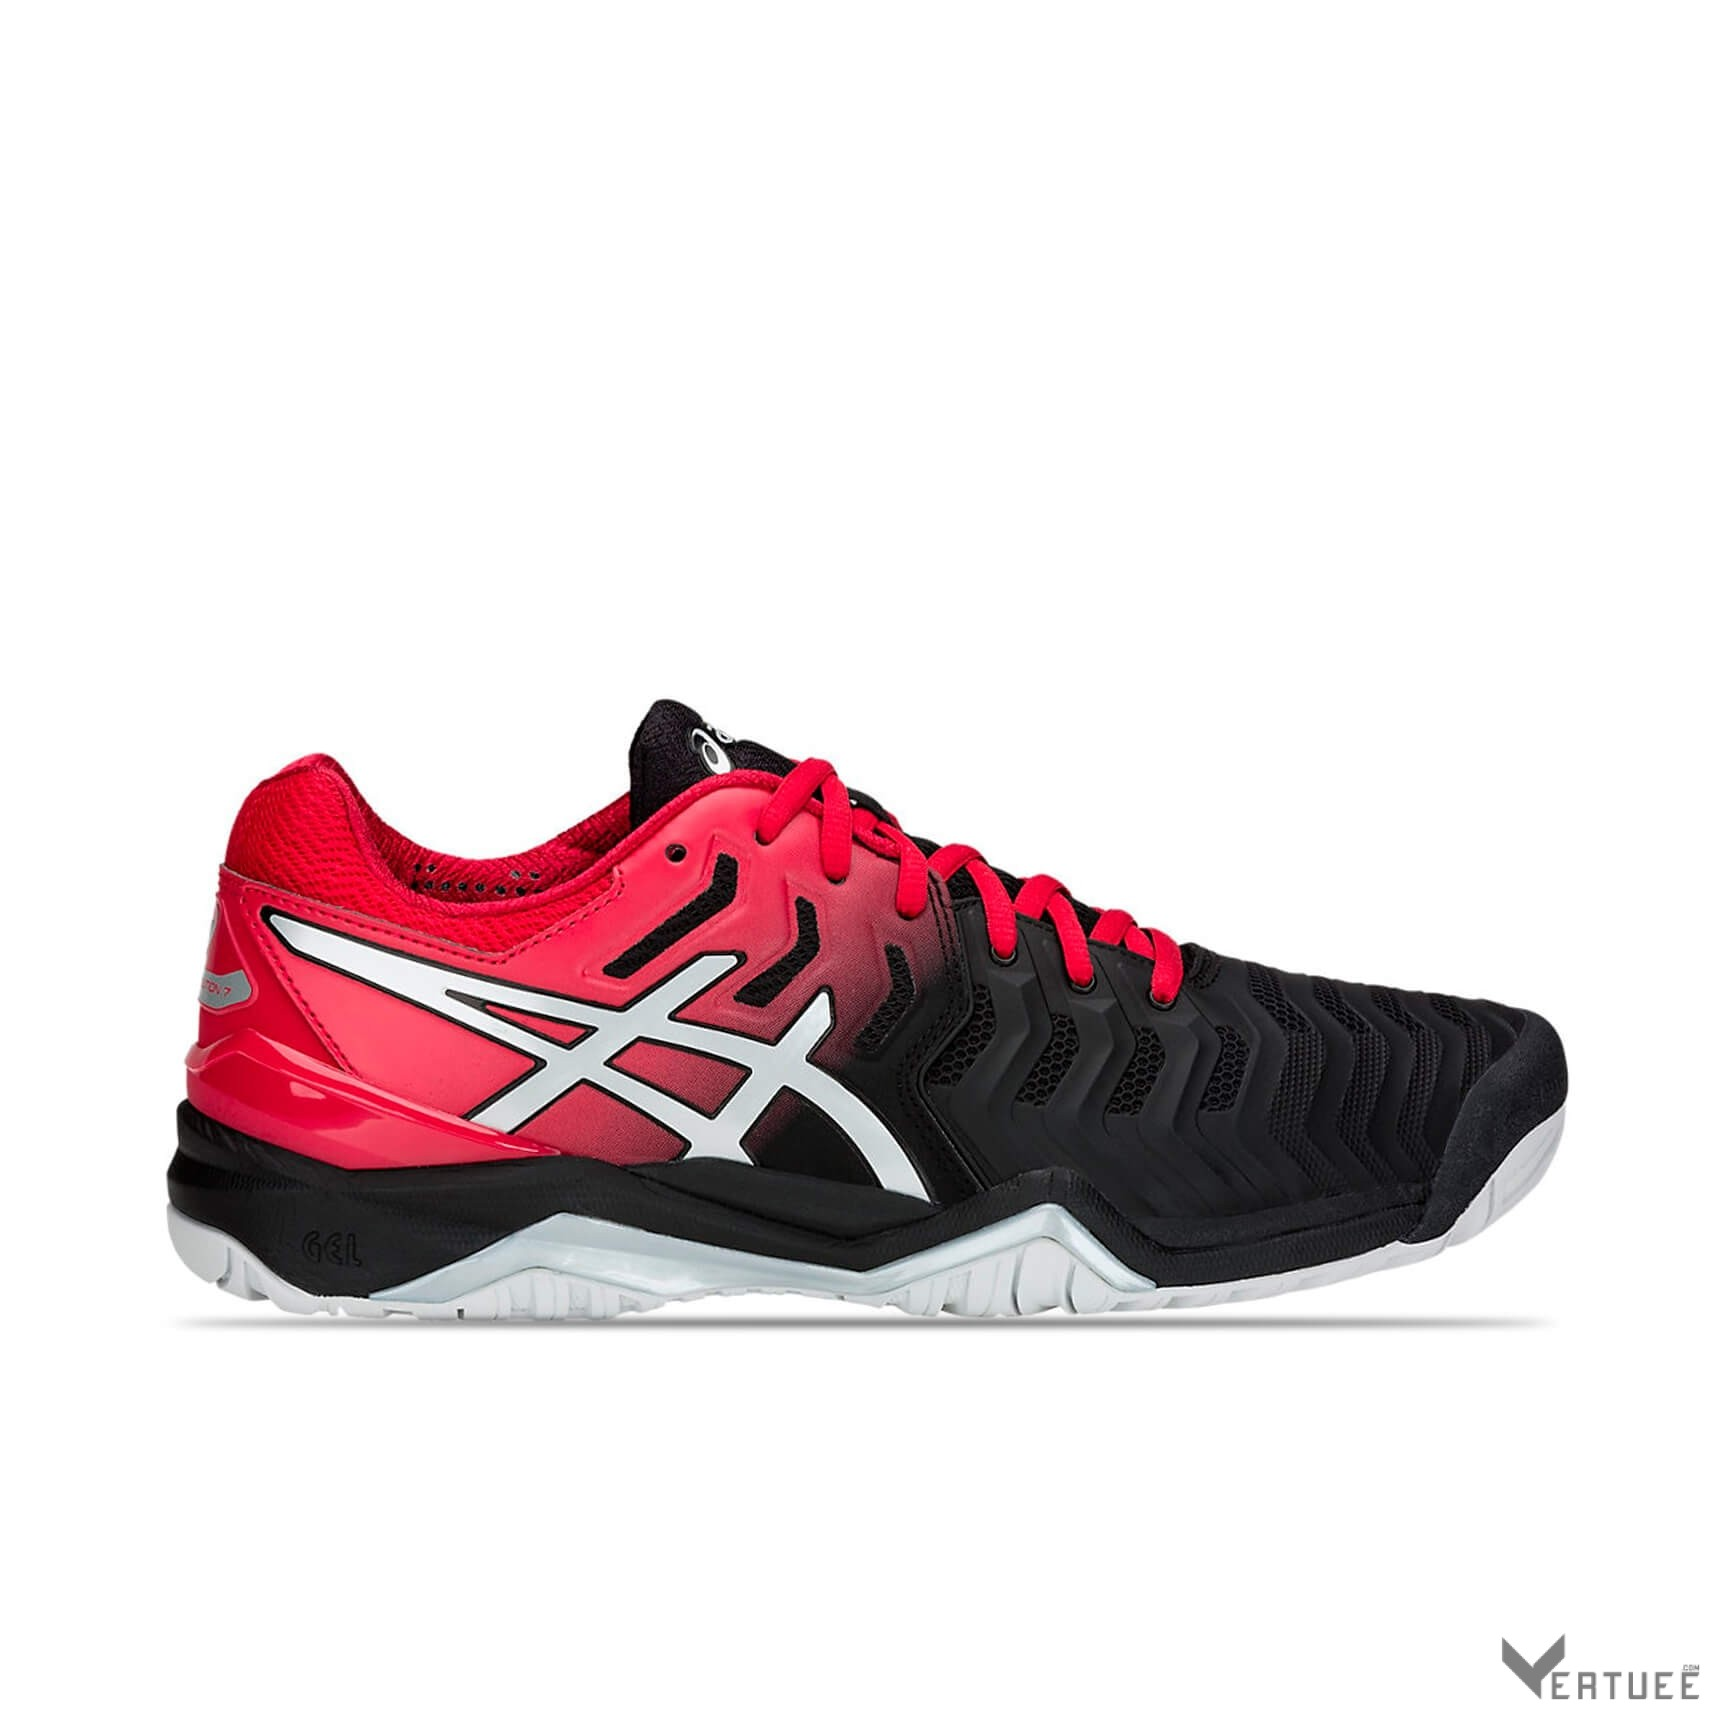 asics shoes kenya